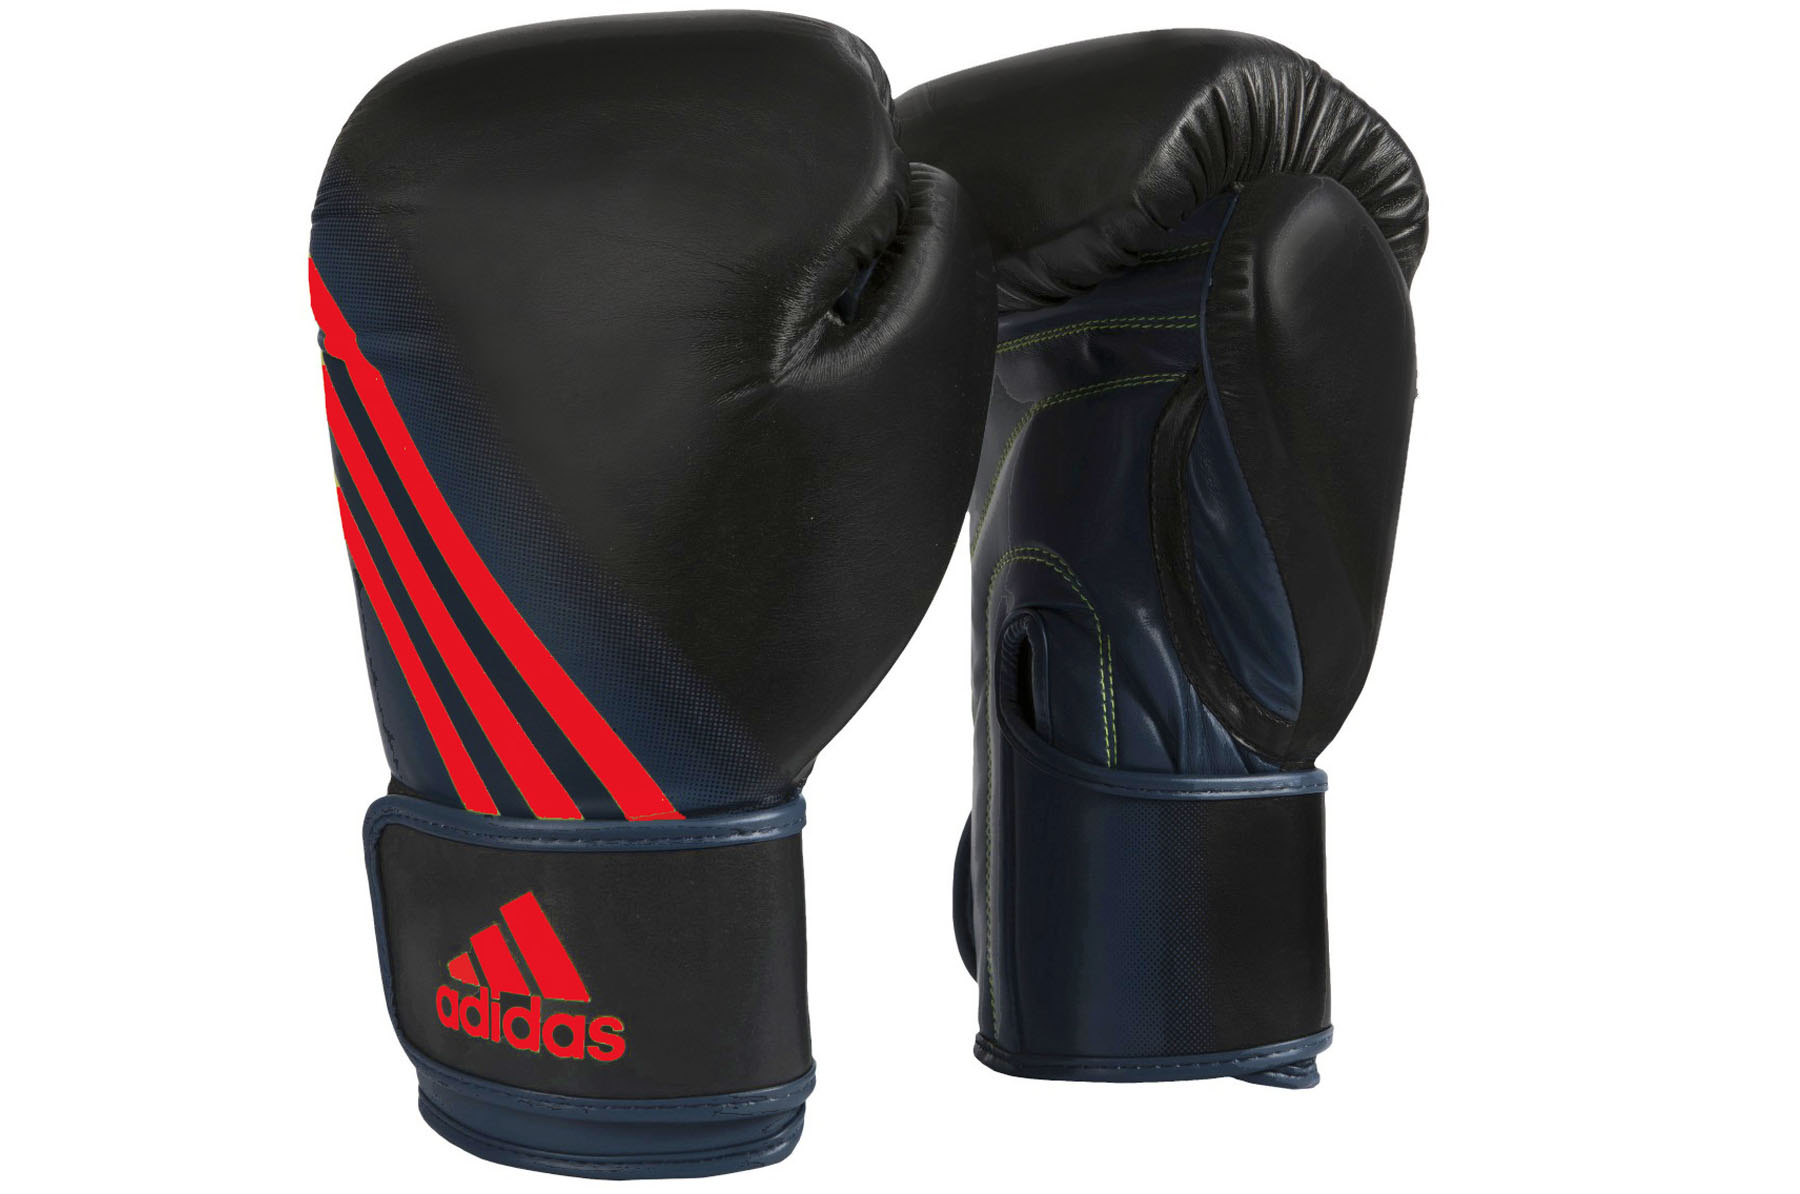 eu Gants Boxe Dragonsports De Adisbgs200Adidas Speed200 xdBerCo